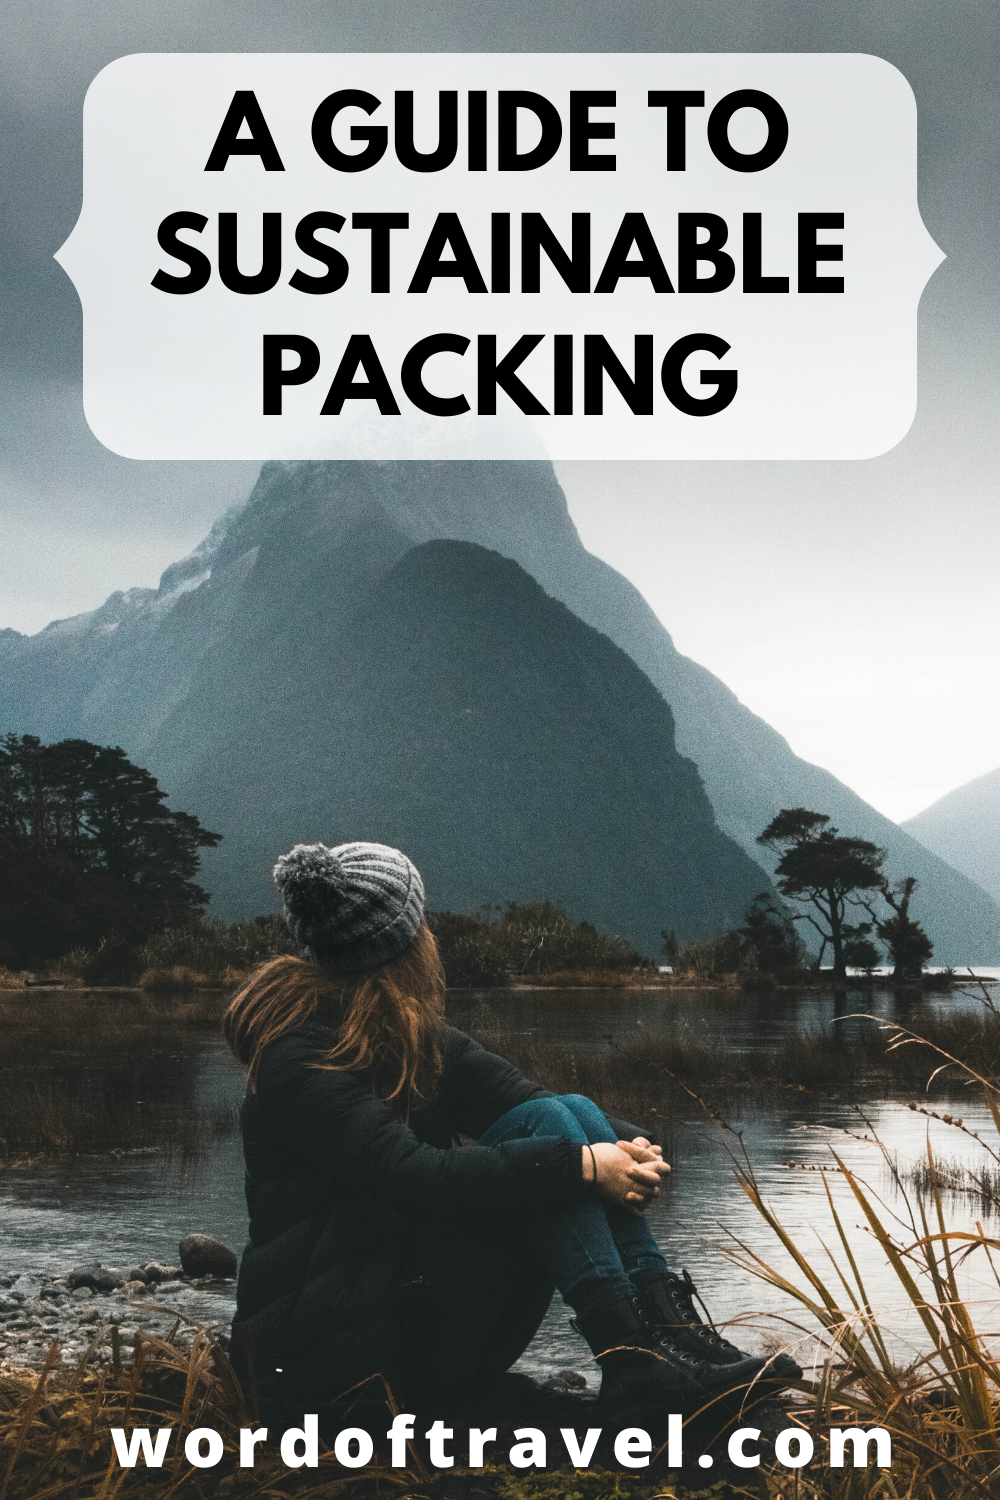 A Guide to Sustainable Packing wordoftravel Best